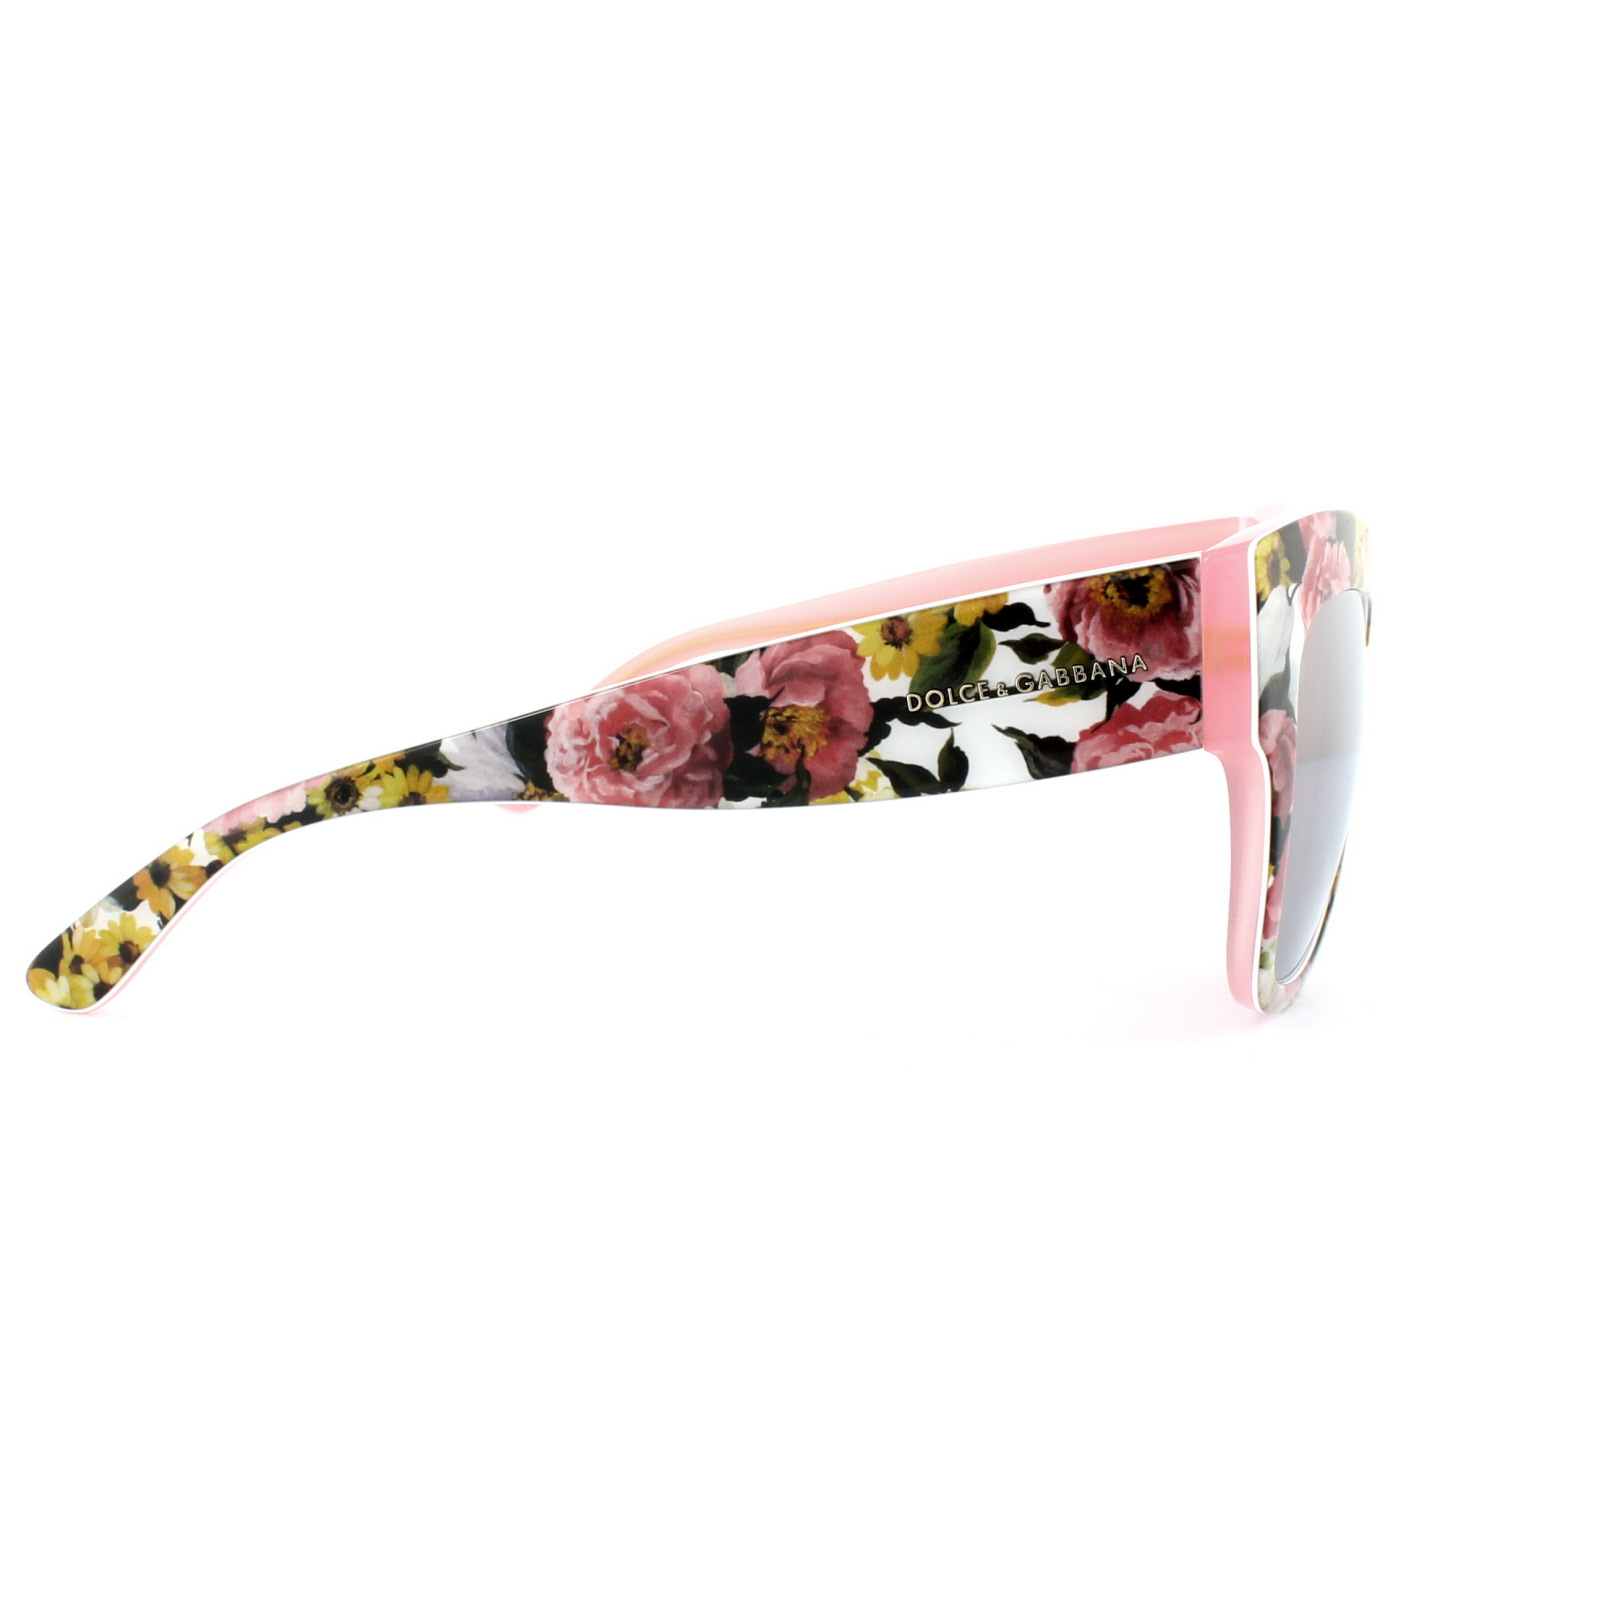 6596a0ec115b Dolce And Gabbana Flower Sunglasses Uk « Heritage Malta